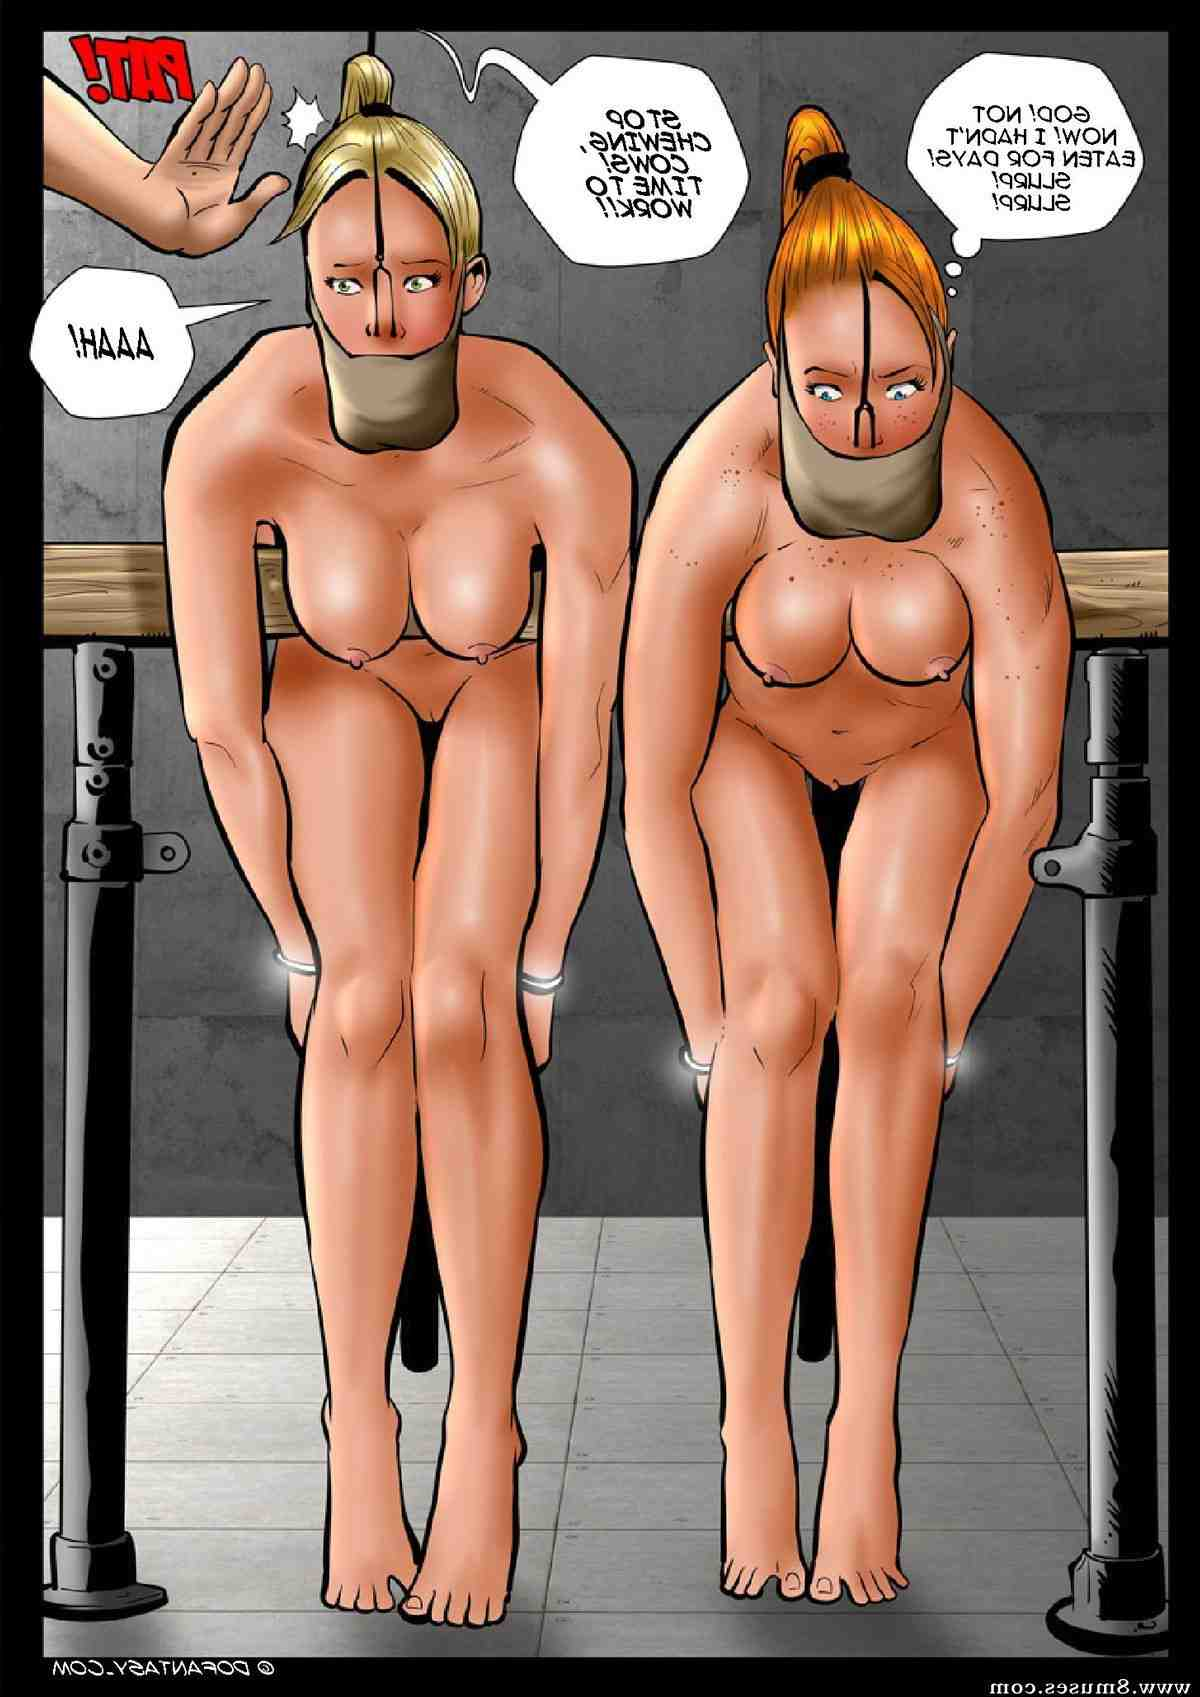 Fansadox-Comics/401-500/Fansadox-413-A-Bold-Officer-Cagri Fansadox_413_-_A_Bold_Officer_-_Cagri__8muses_-_Sex_and_Porn_Comics_32.jpg